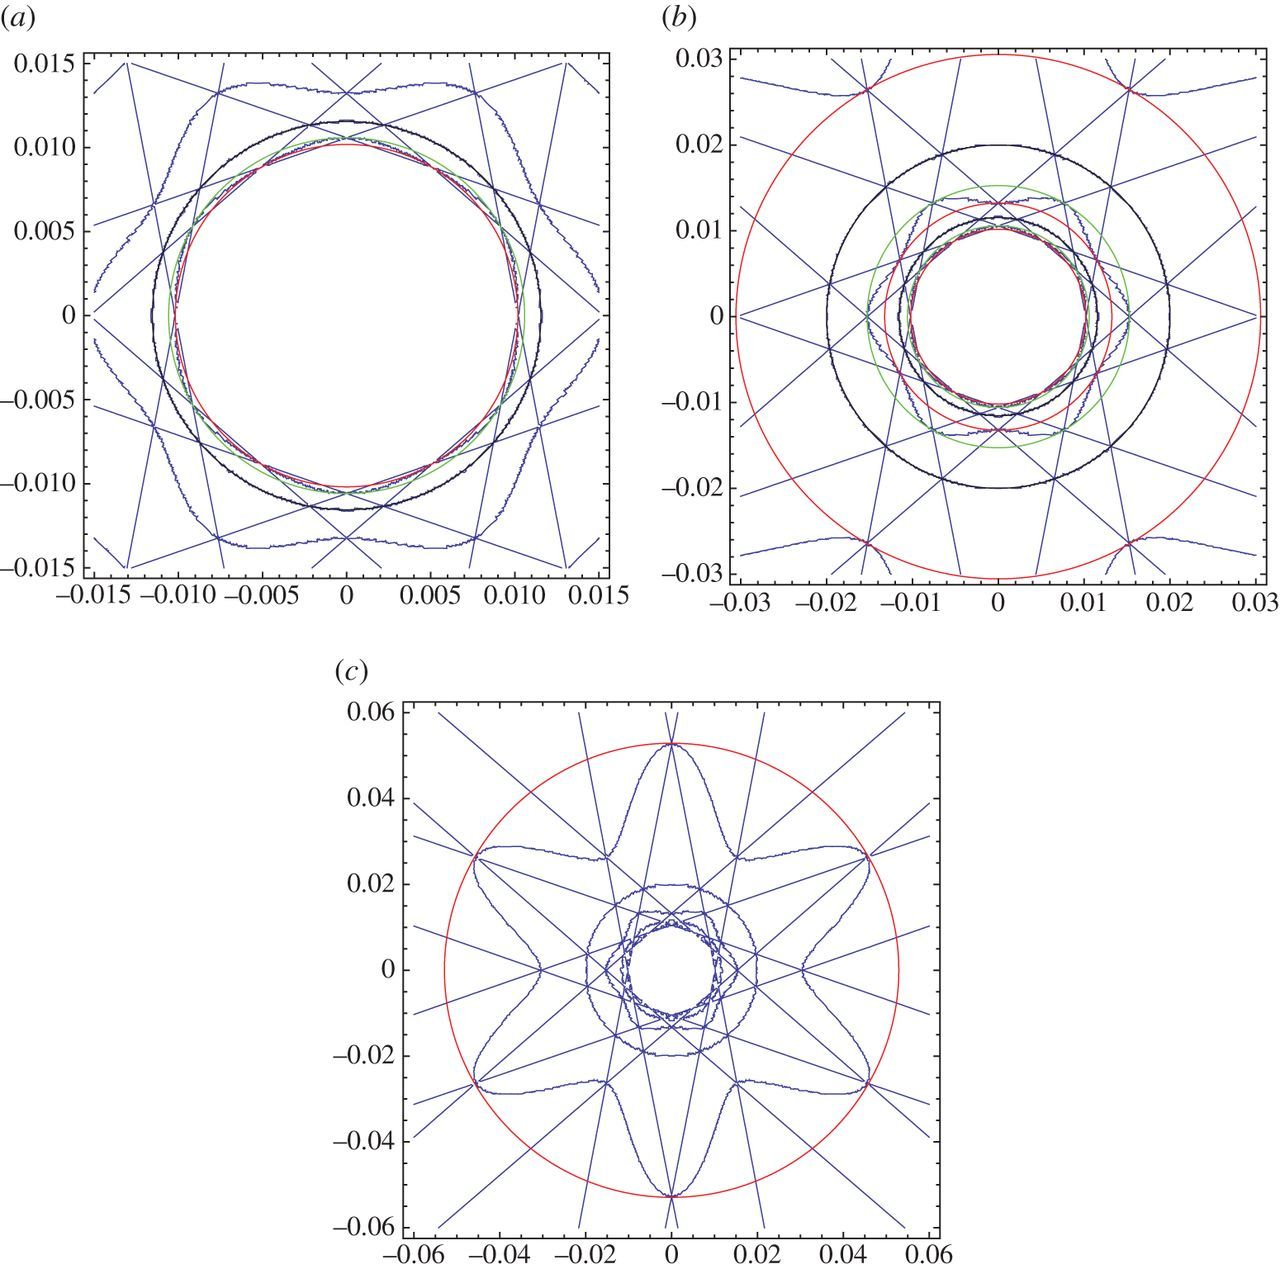 'Parabolic' trapped modes and steered Dirac cones in